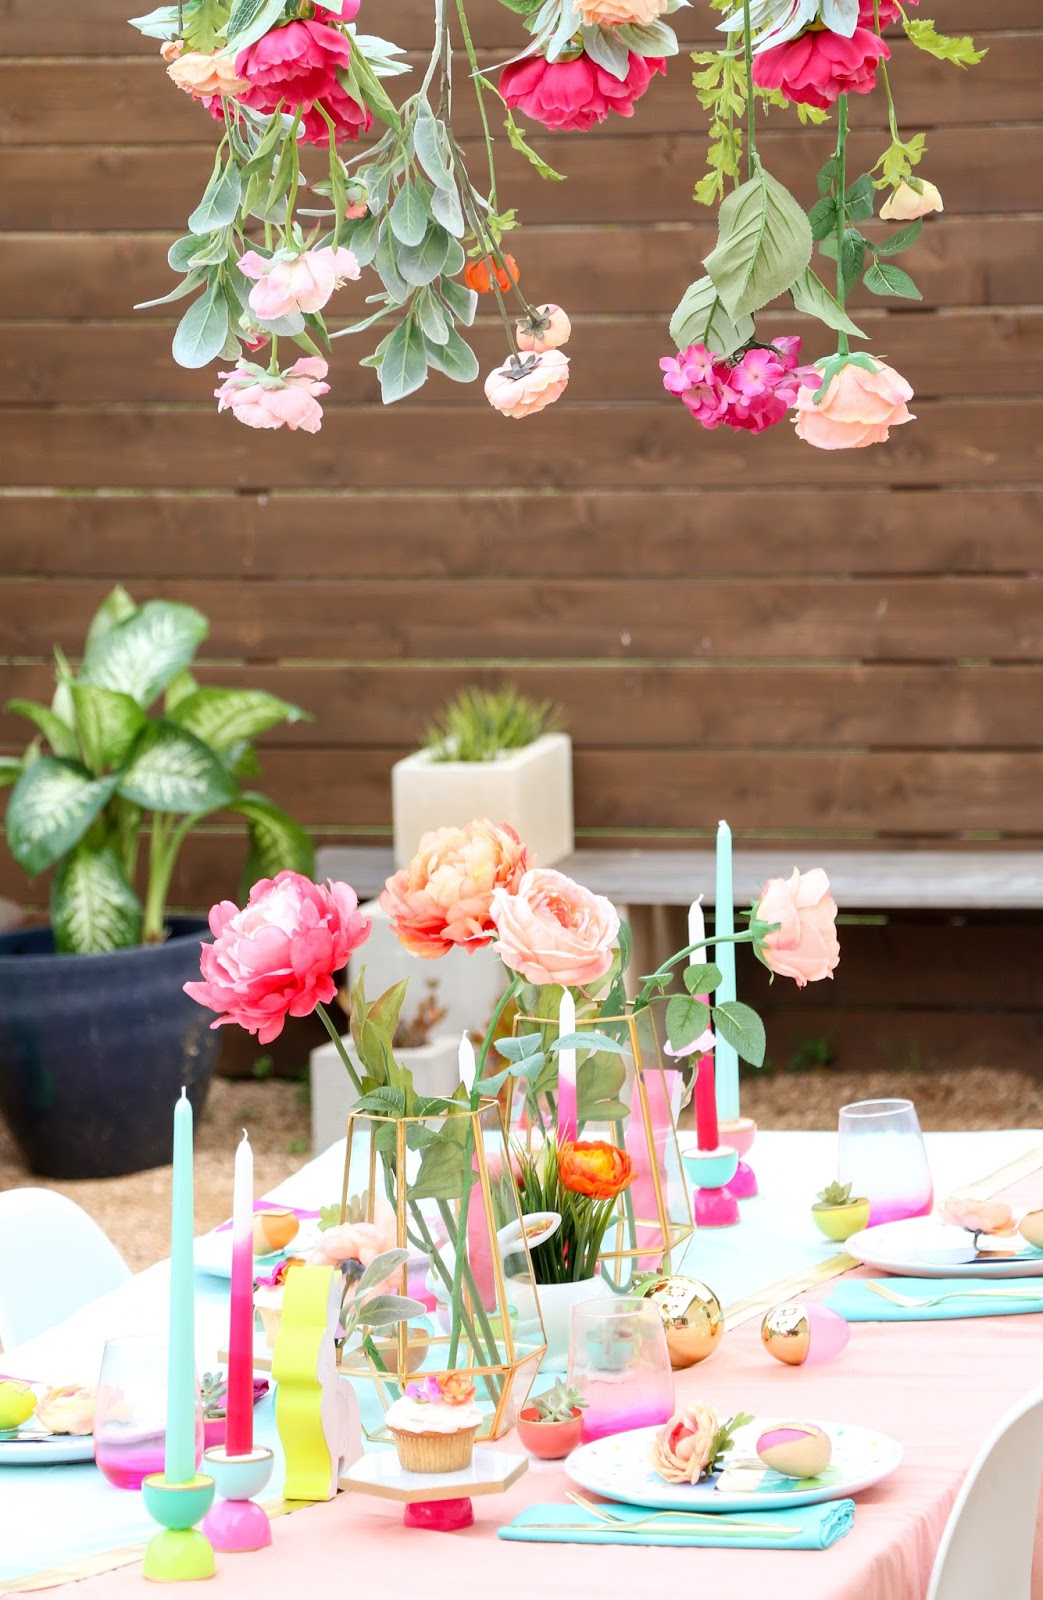 Style It \u2013 A Spring Table Setting & Style It - A Spring Table Setting - A Kailo Chic Life